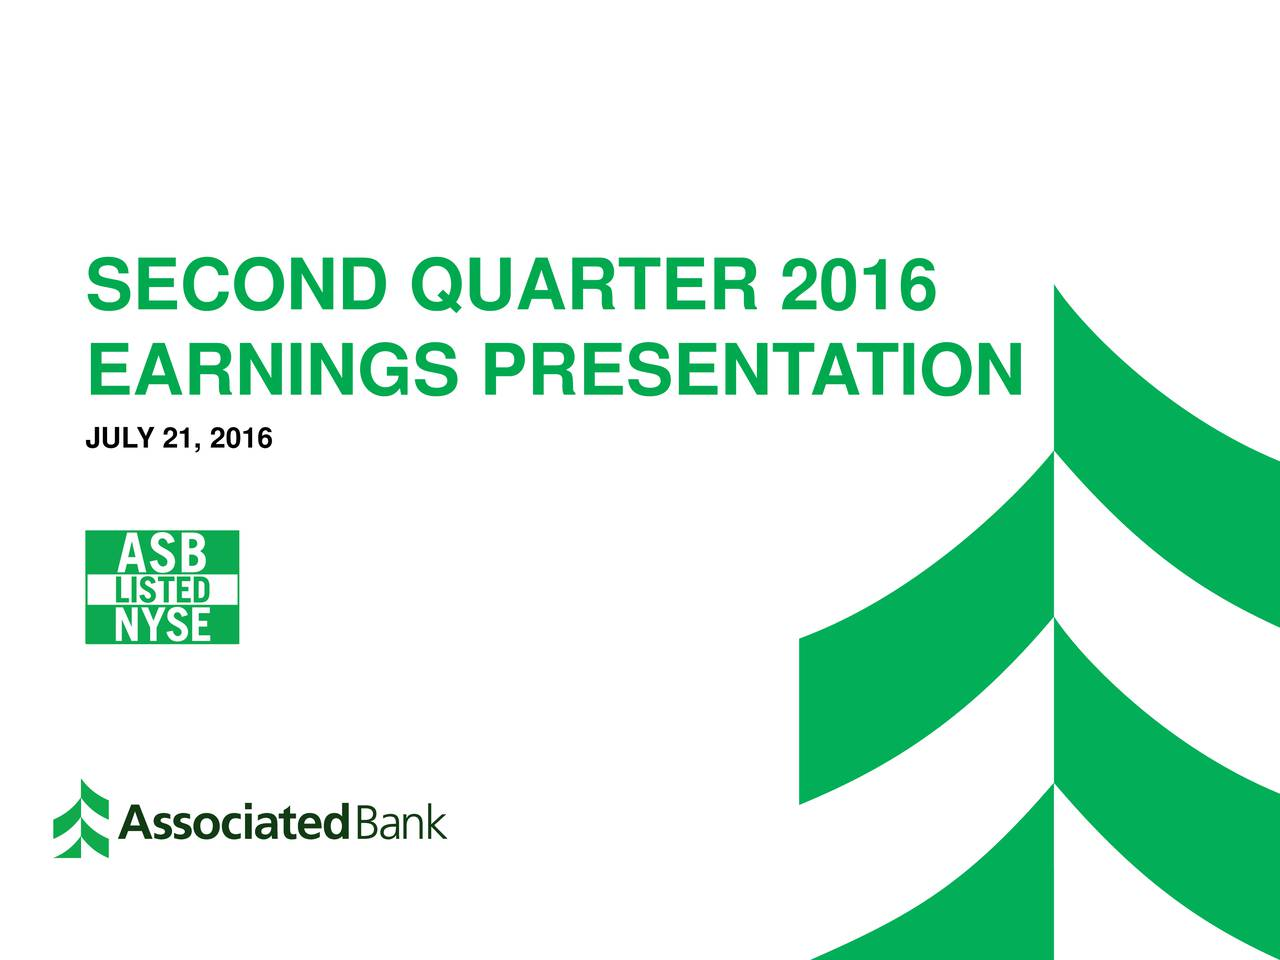 EARNINGS PRESENT ATION JULY 21, 2016